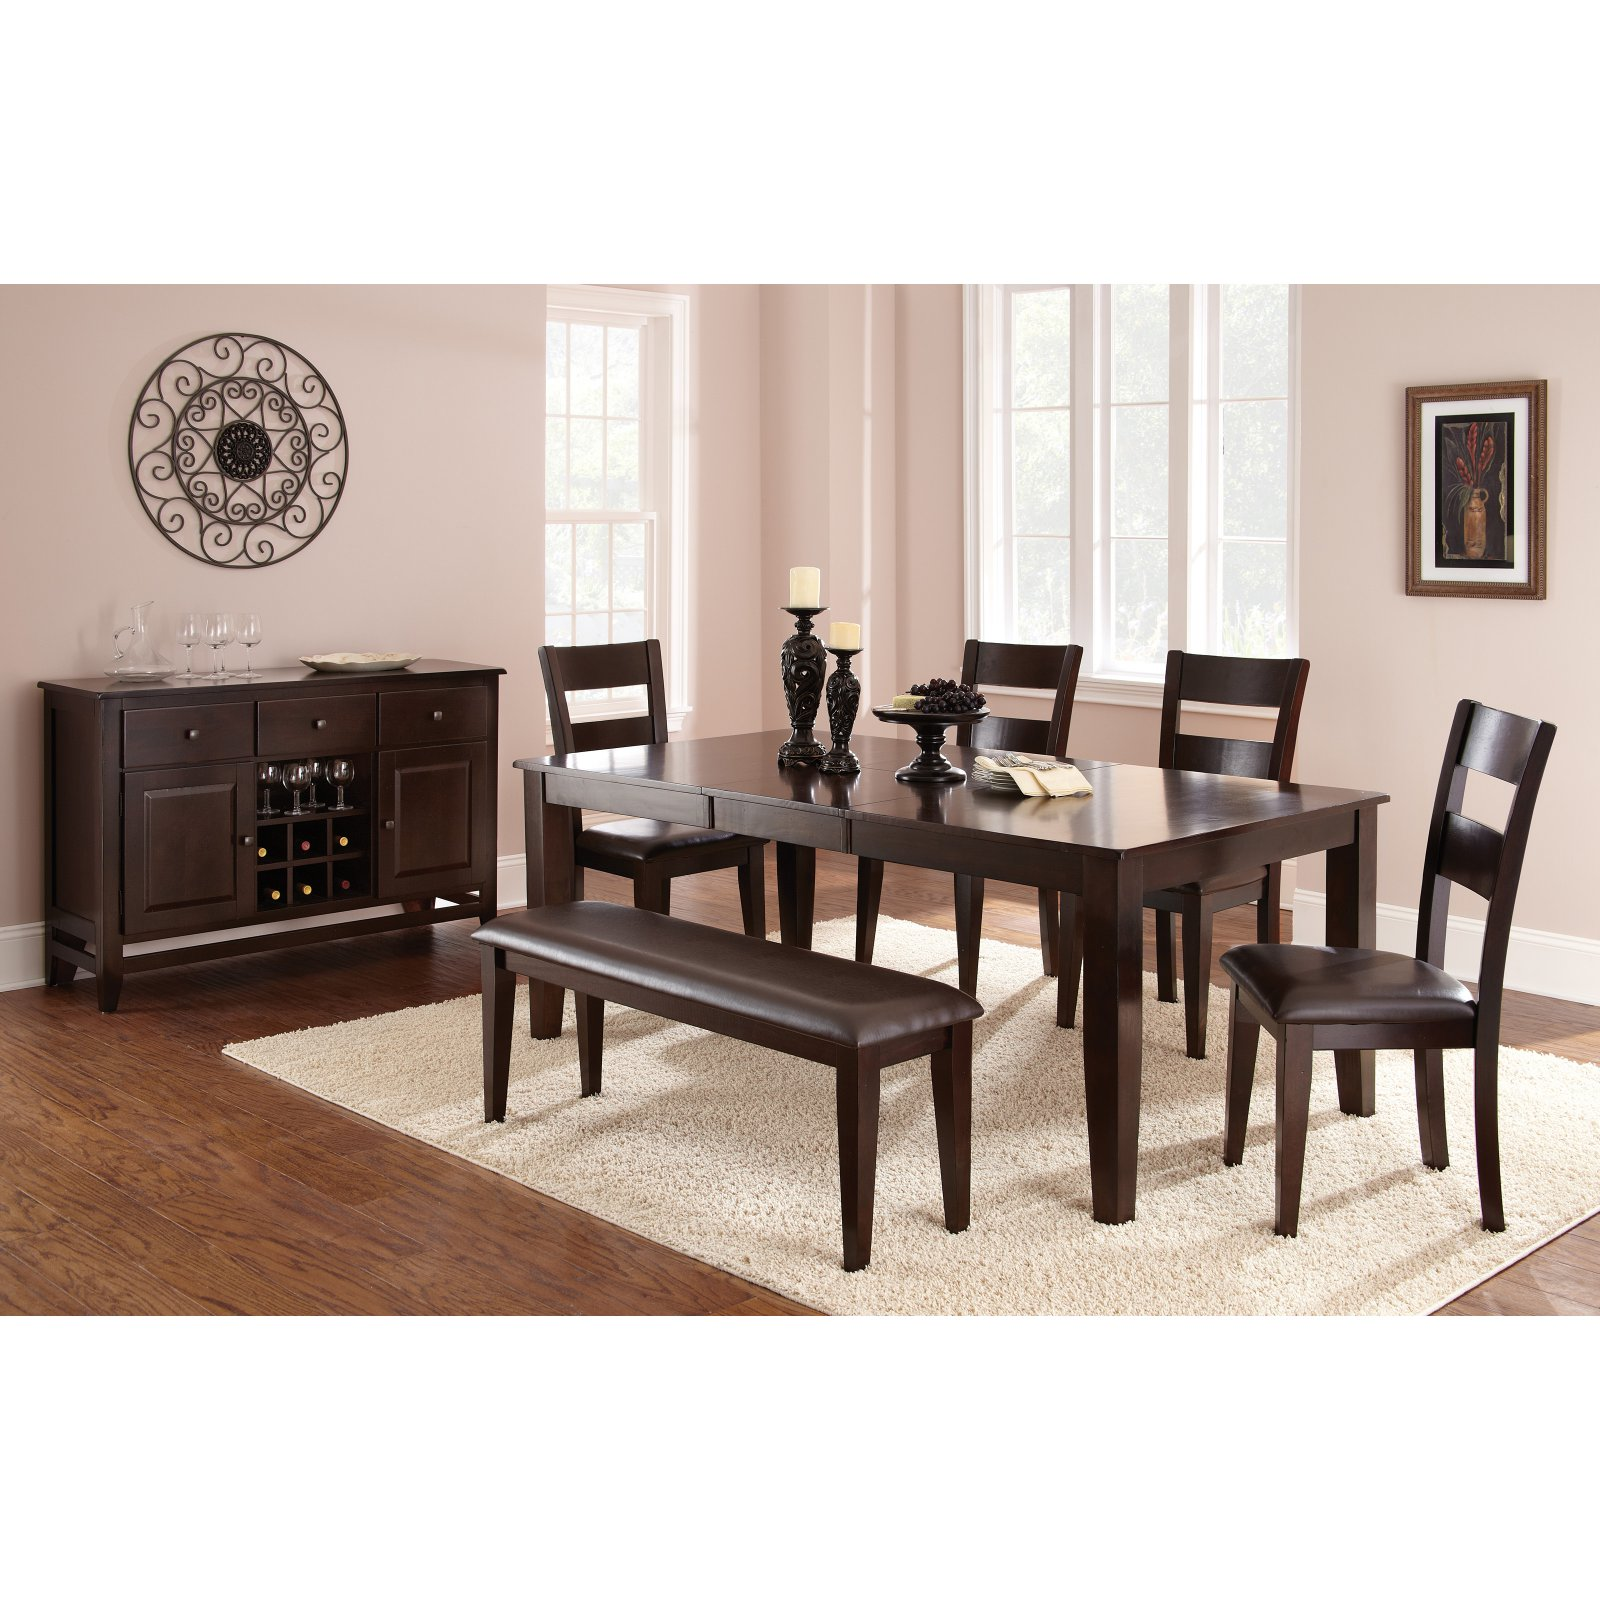 Steve Silver Victoria Dining Table   Mango